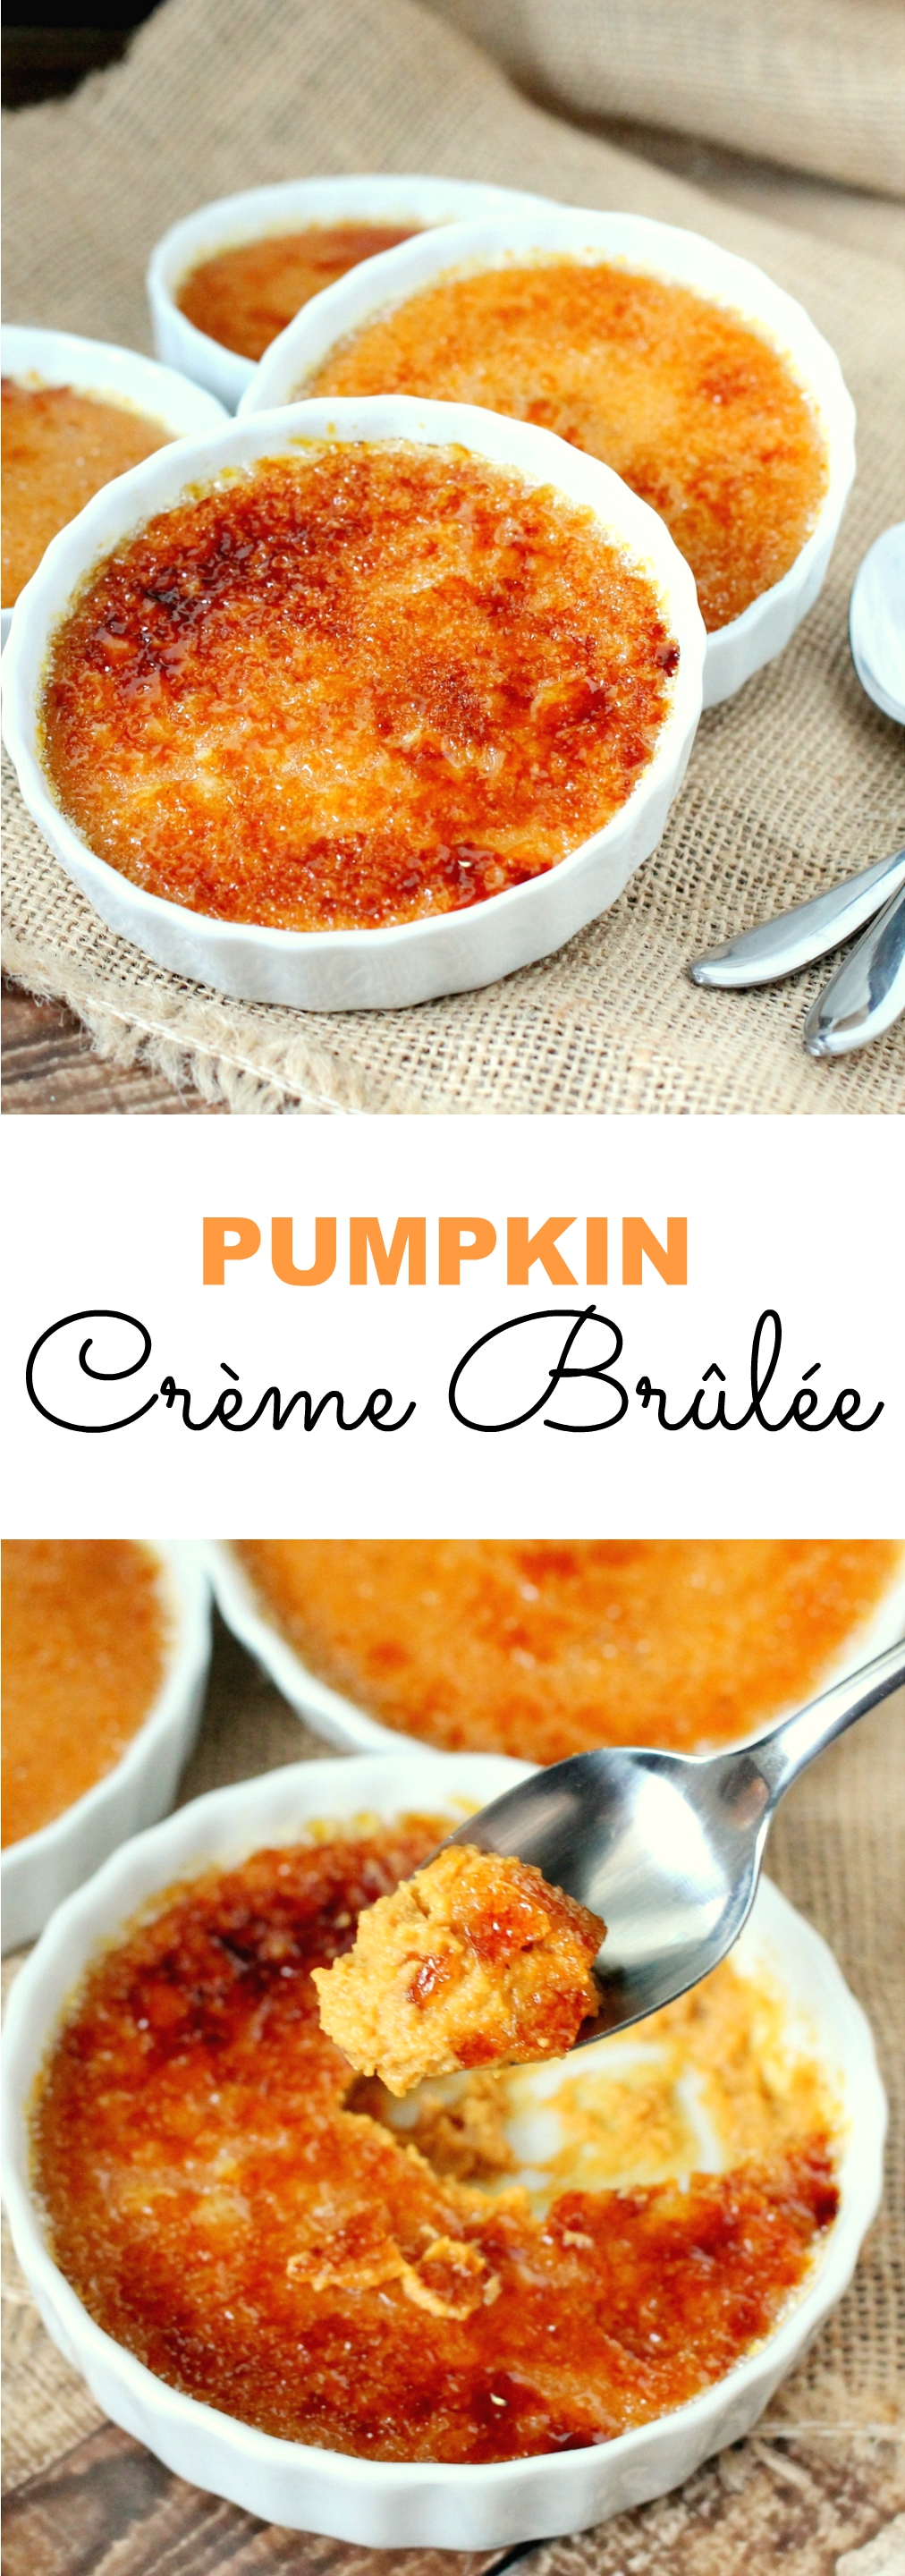 Looking for more pumpkin recipes ? Why not give these a try?